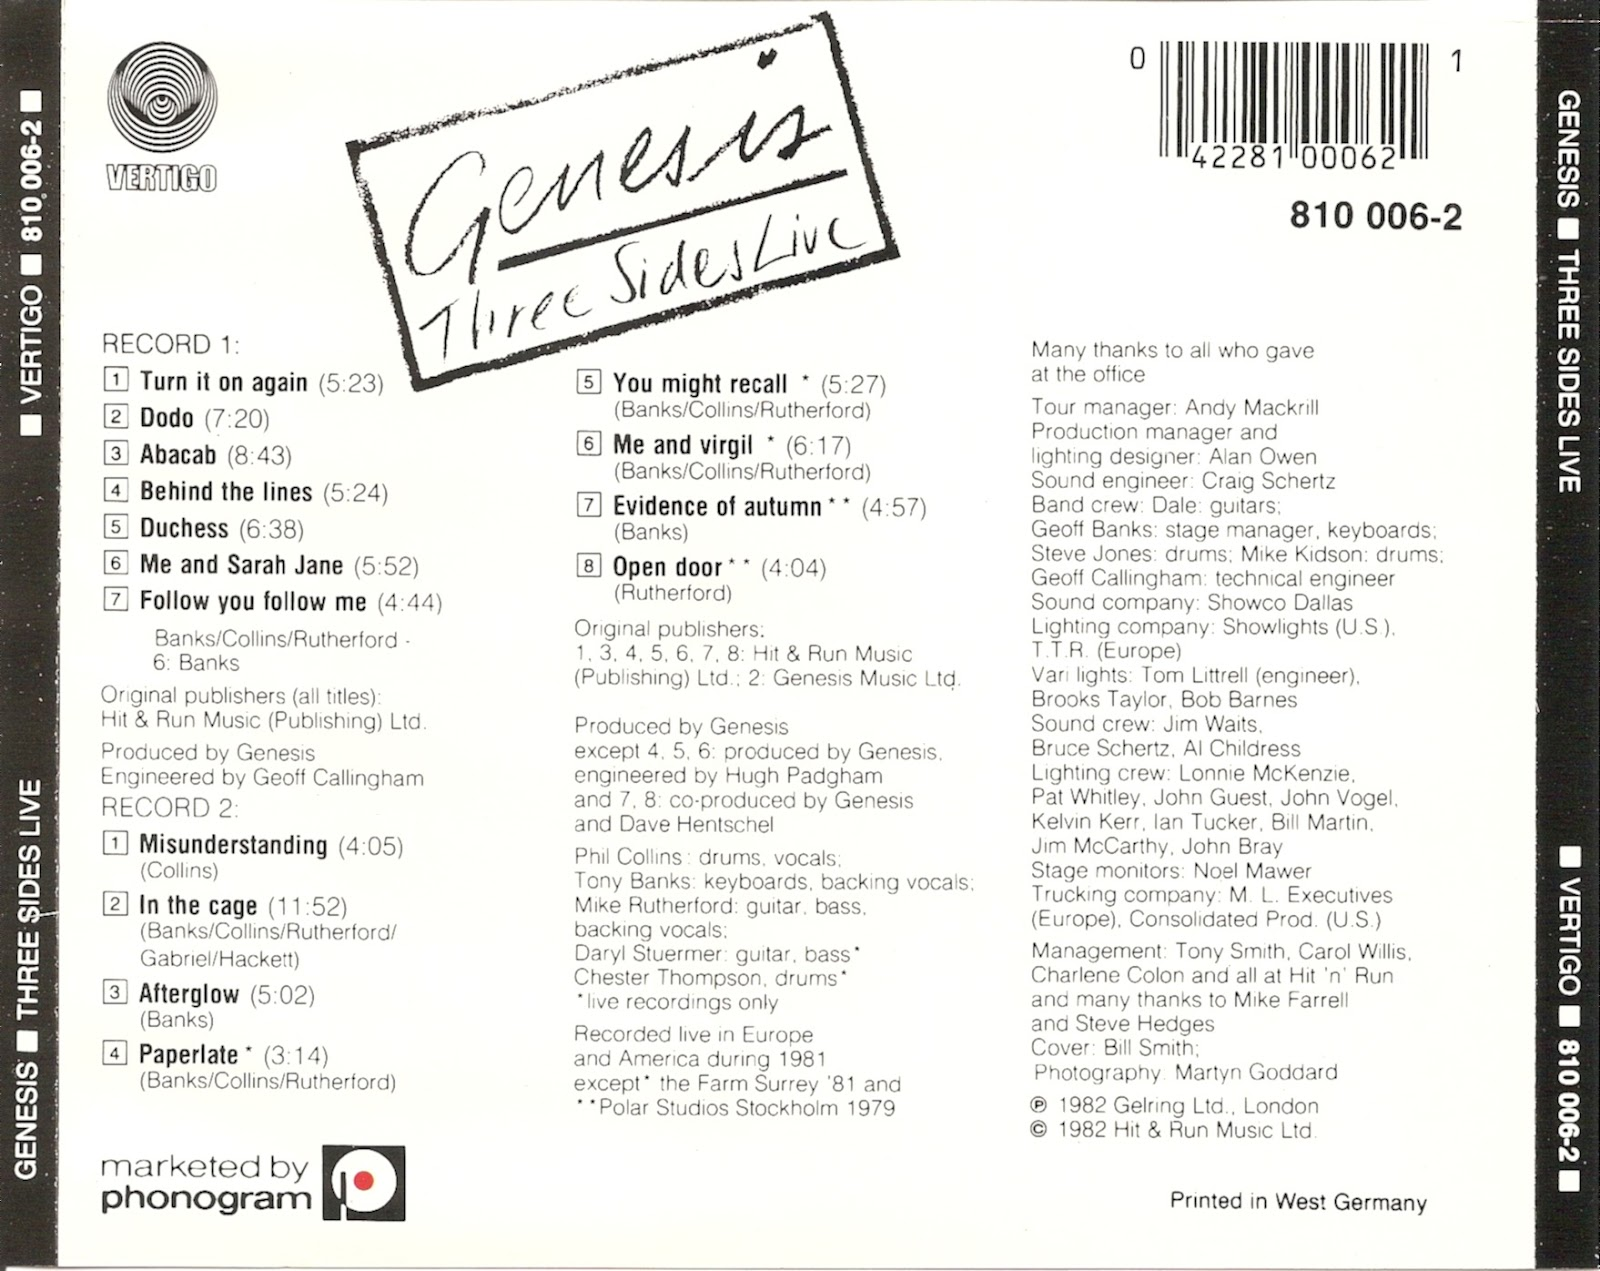 The First Pressing CD Collection: Genesis - Three Sides Live